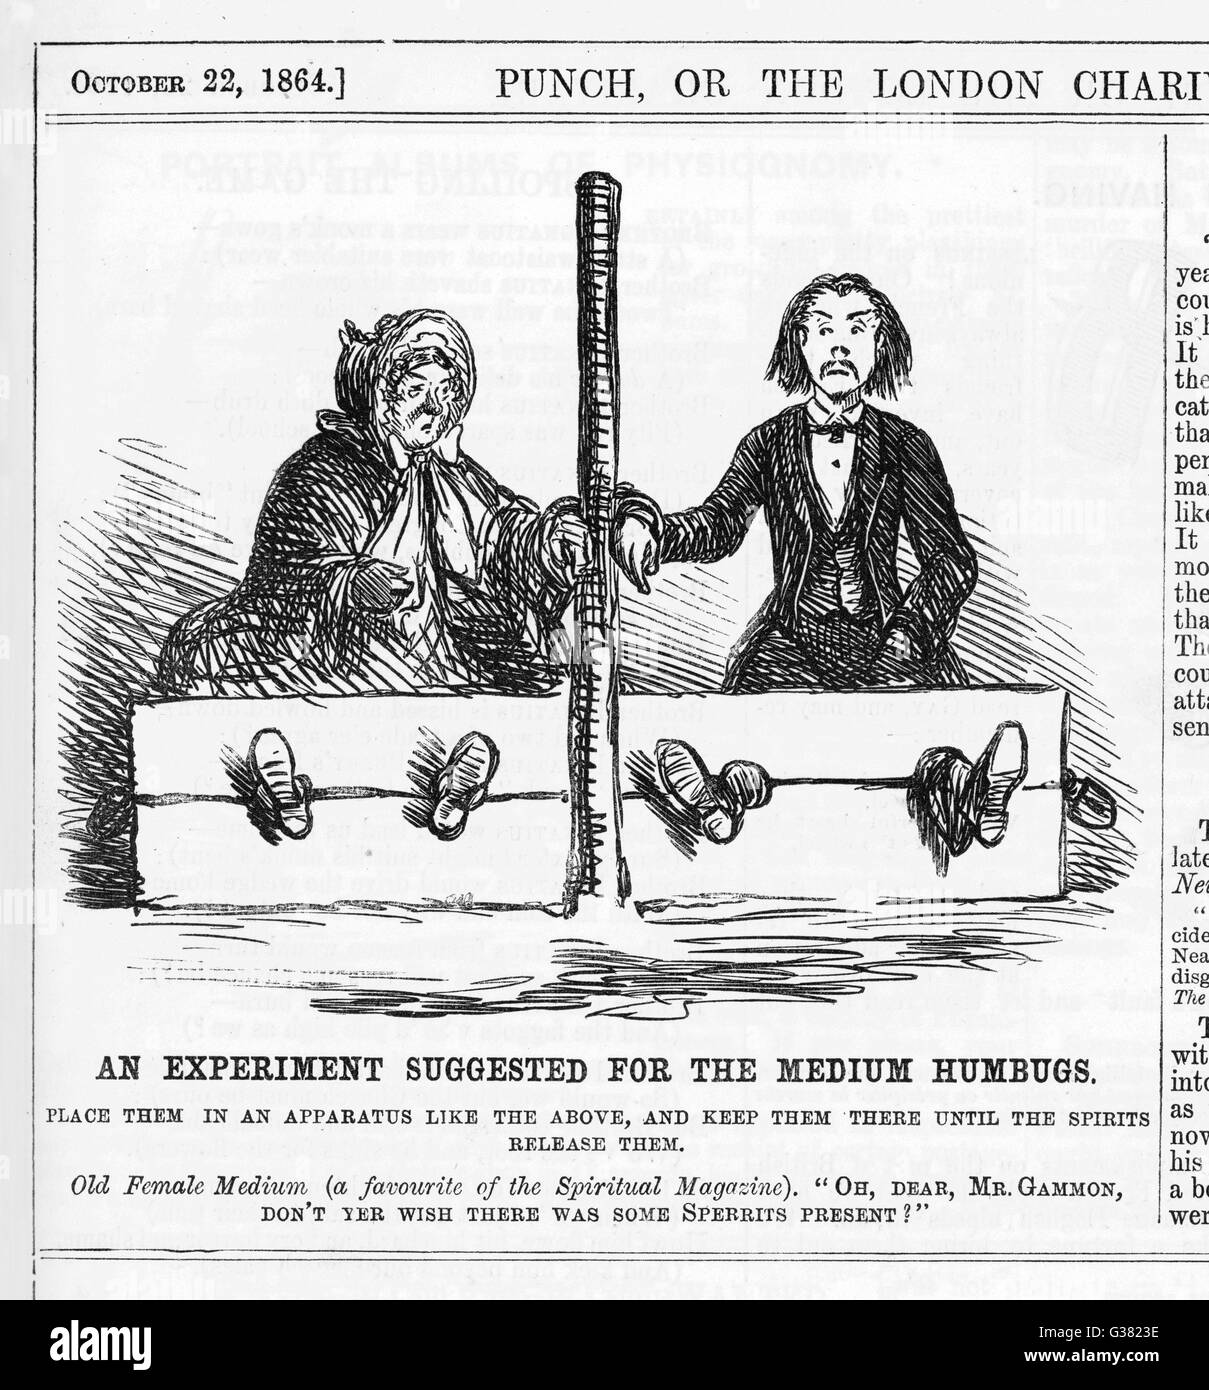 Mediums should be put in the  stocks until they are released  by their friends the spirits        Date: 1864 - Stock Image